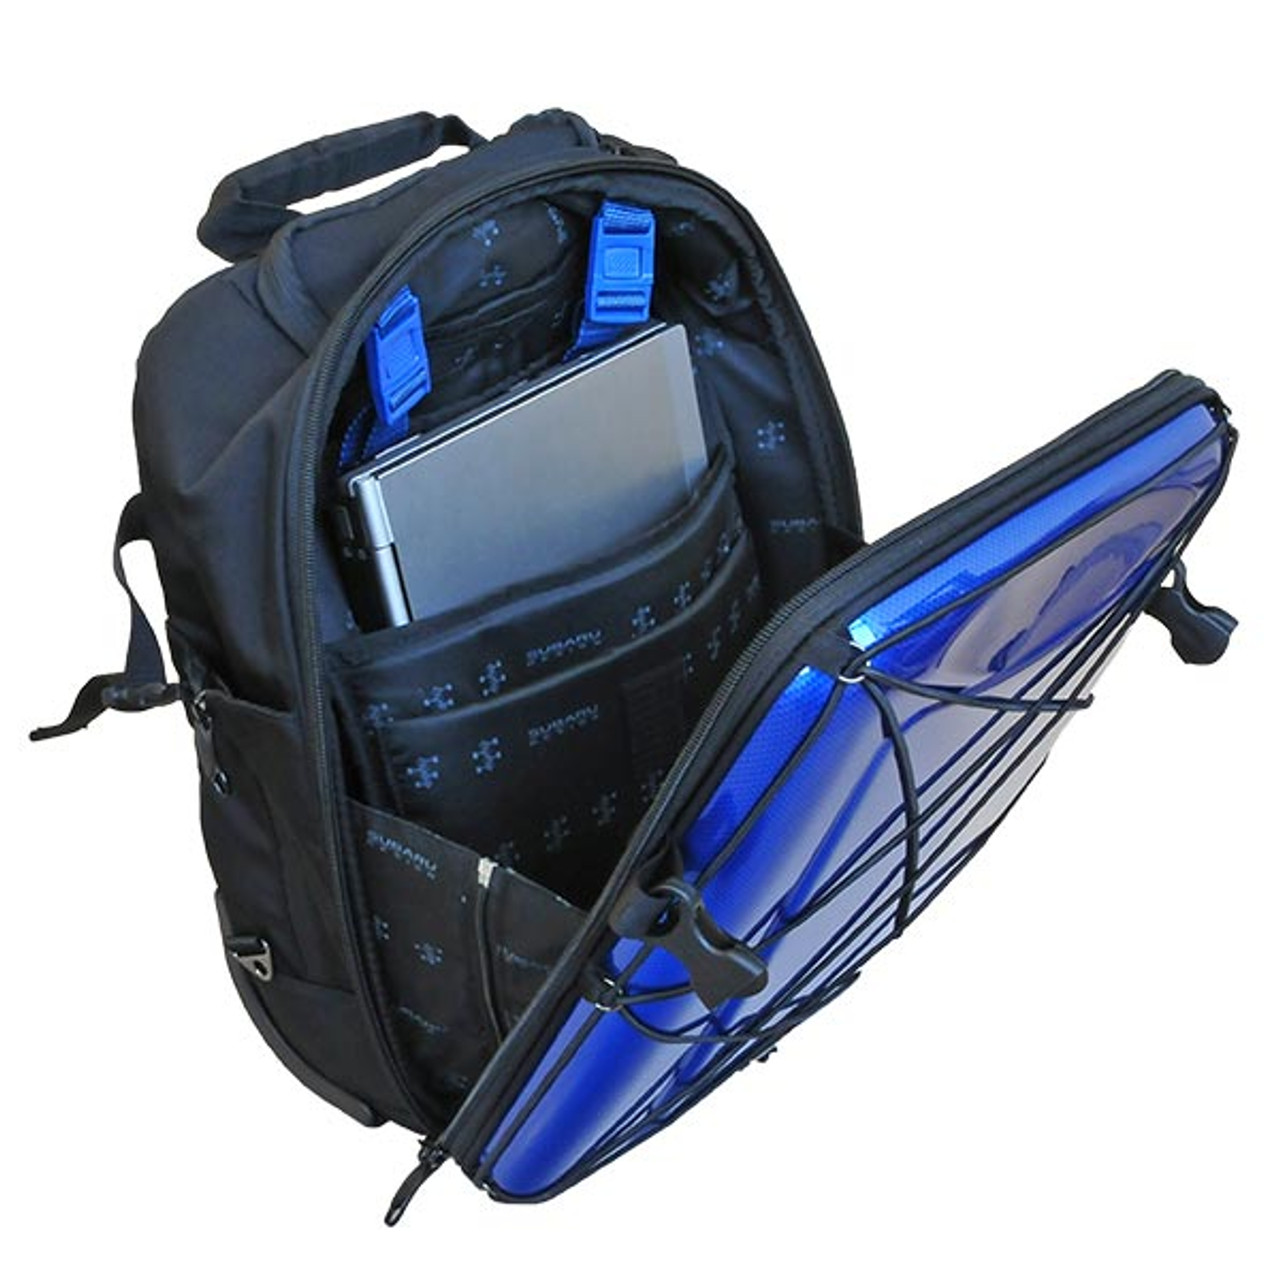 Subaru 3 Way Carry Case loaded at AVOJDM.com